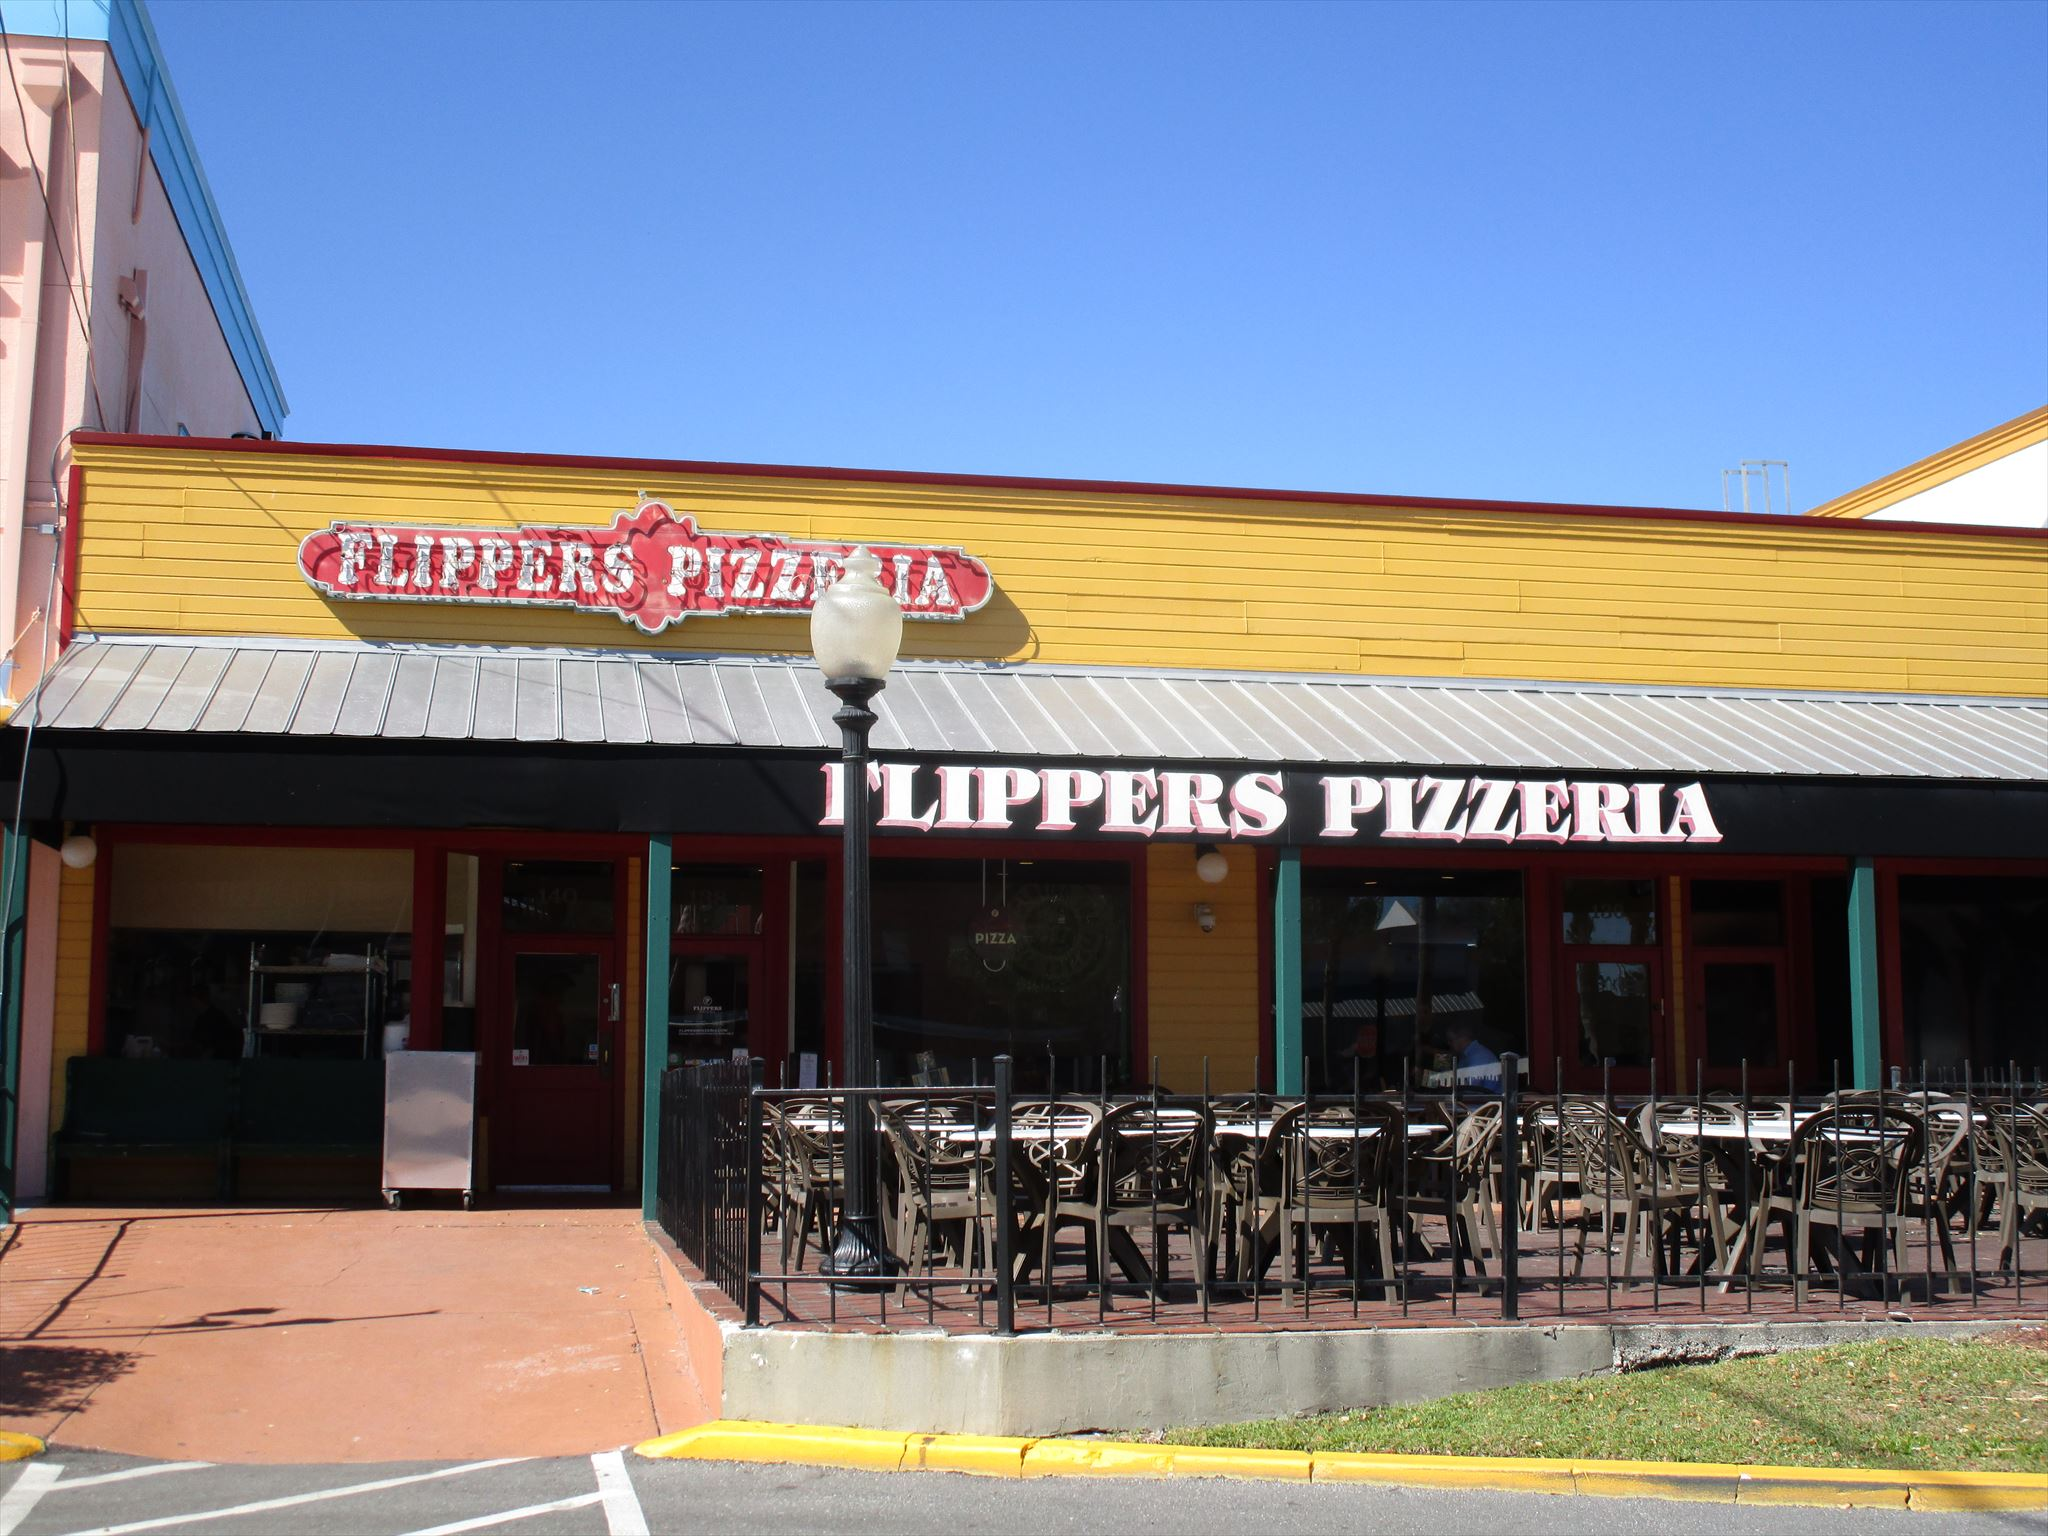 Flippers Pizzeria Old Town Kissimmee Florida Image